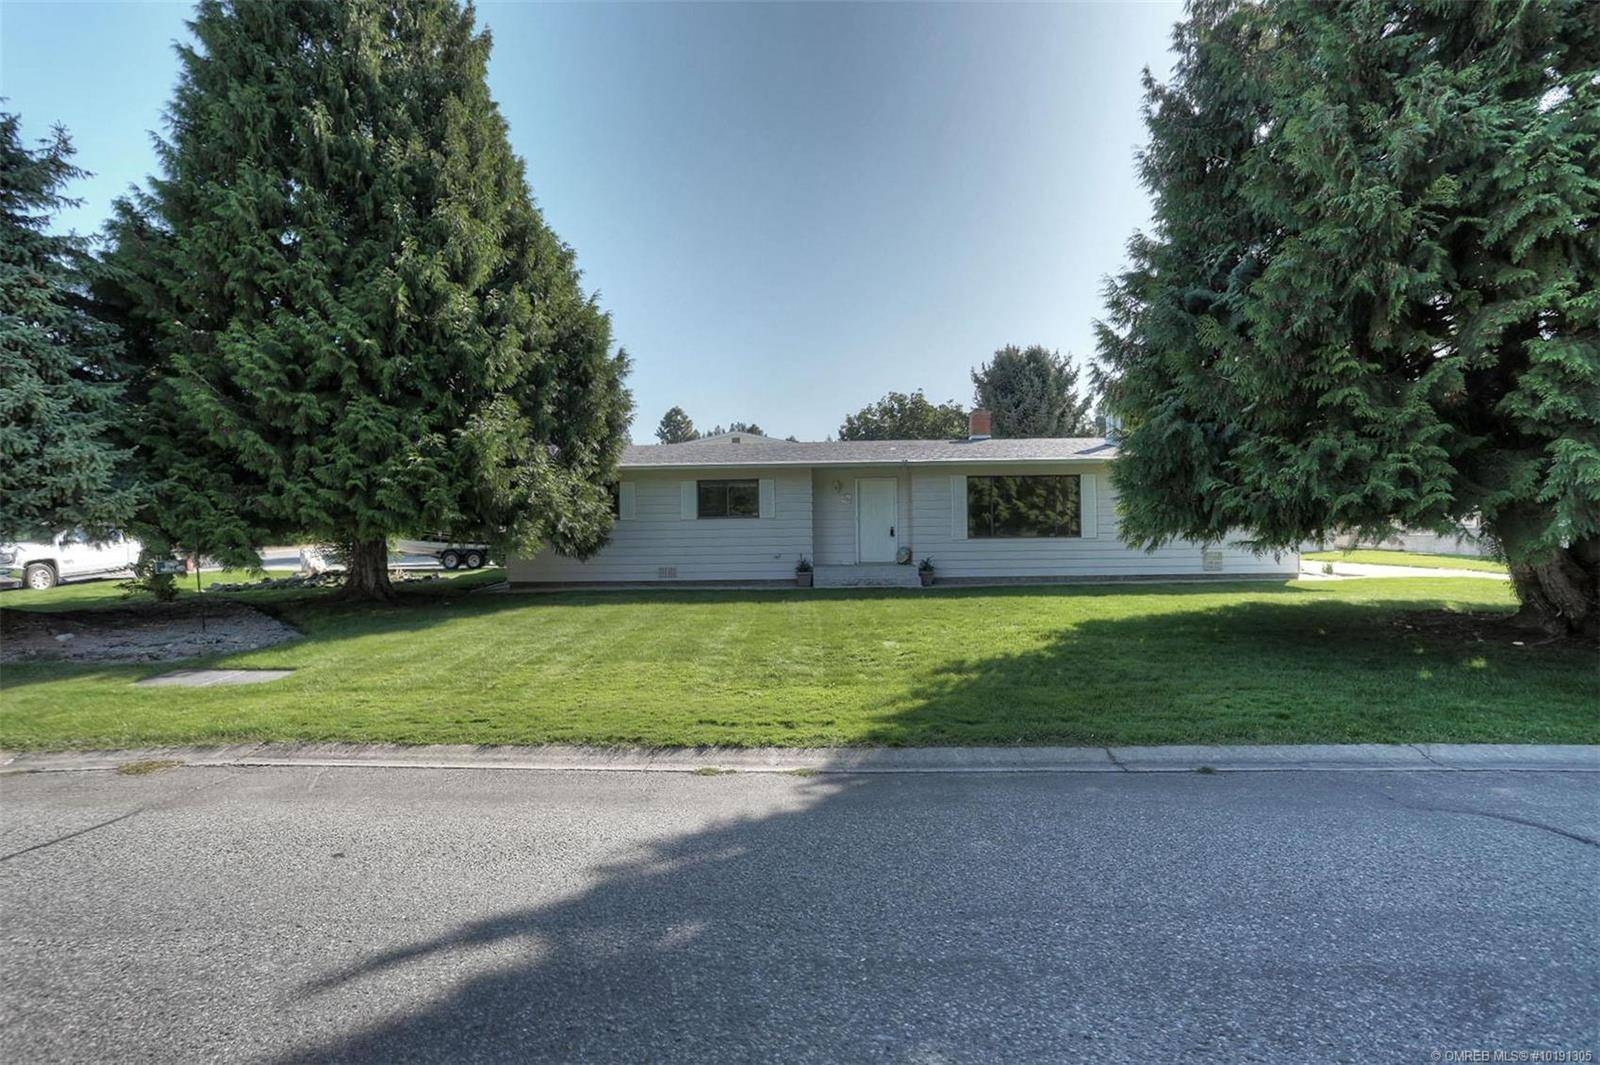 House for sale at 3361 Hall Rd Kelowna British Columbia - MLS: 10191305